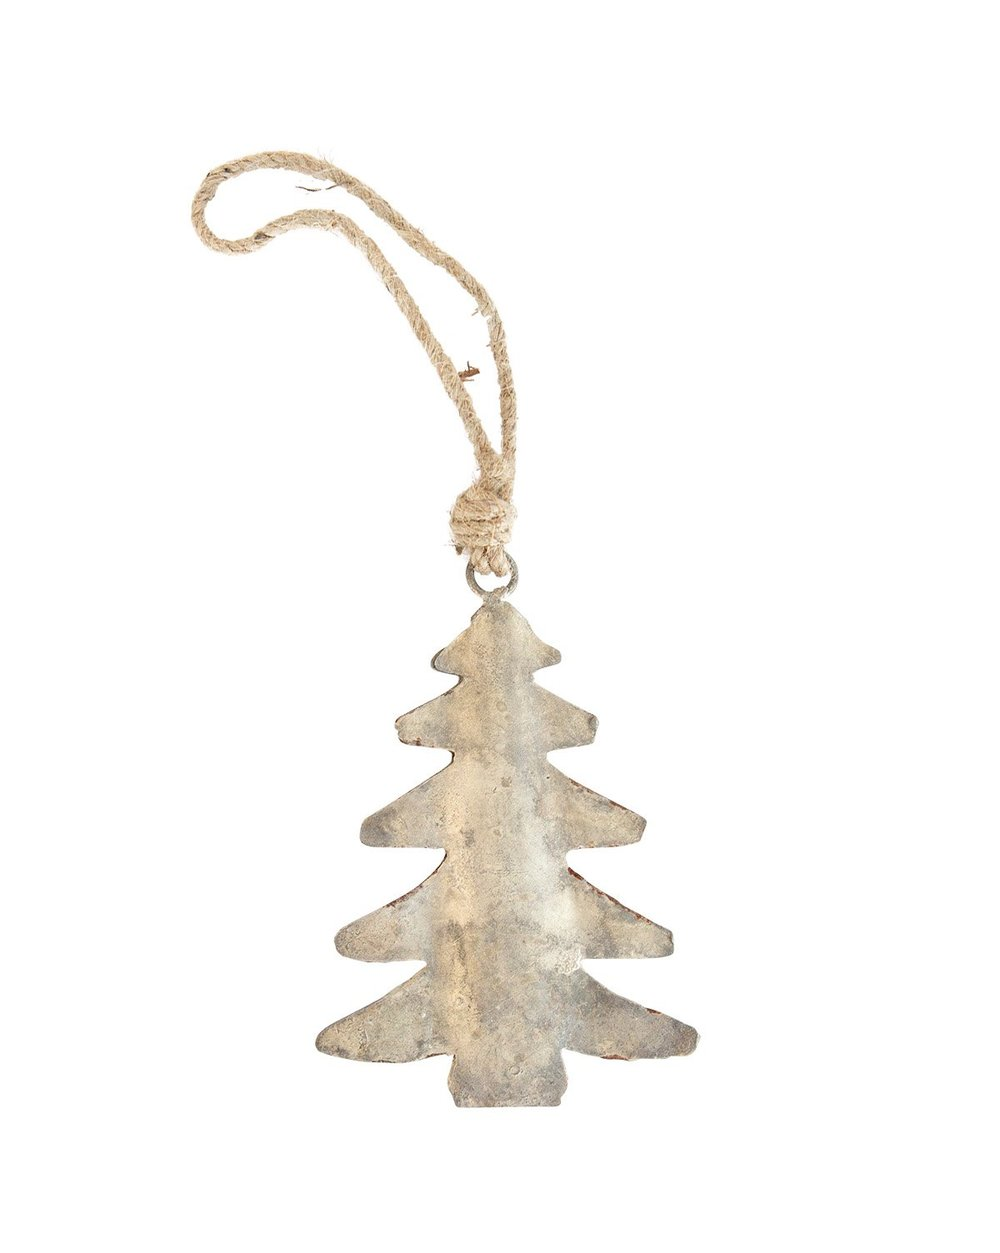 Rustic_Holiday_Tree_Ornament_1.jpg